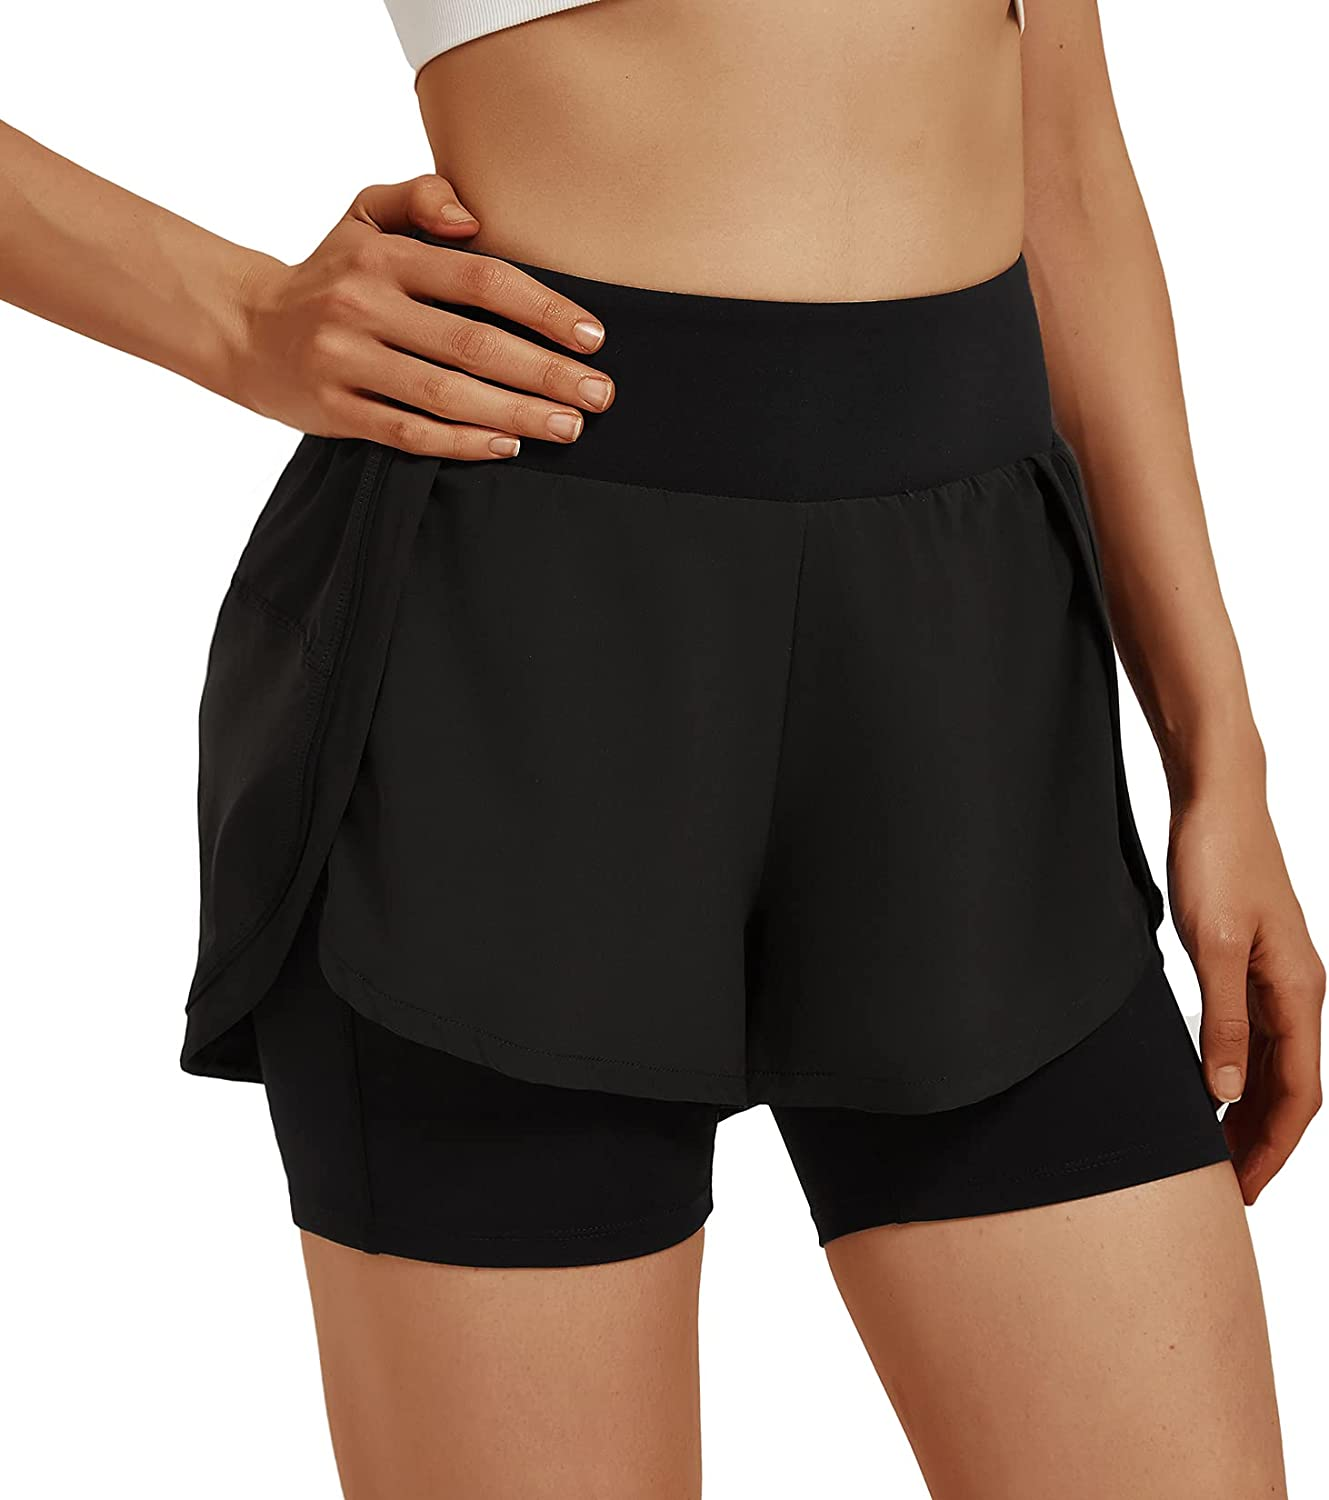 Inno Women's 2 in 1 Outlet sale feature Over item handling ☆ Running Workout Pockets with Athletic Shorts